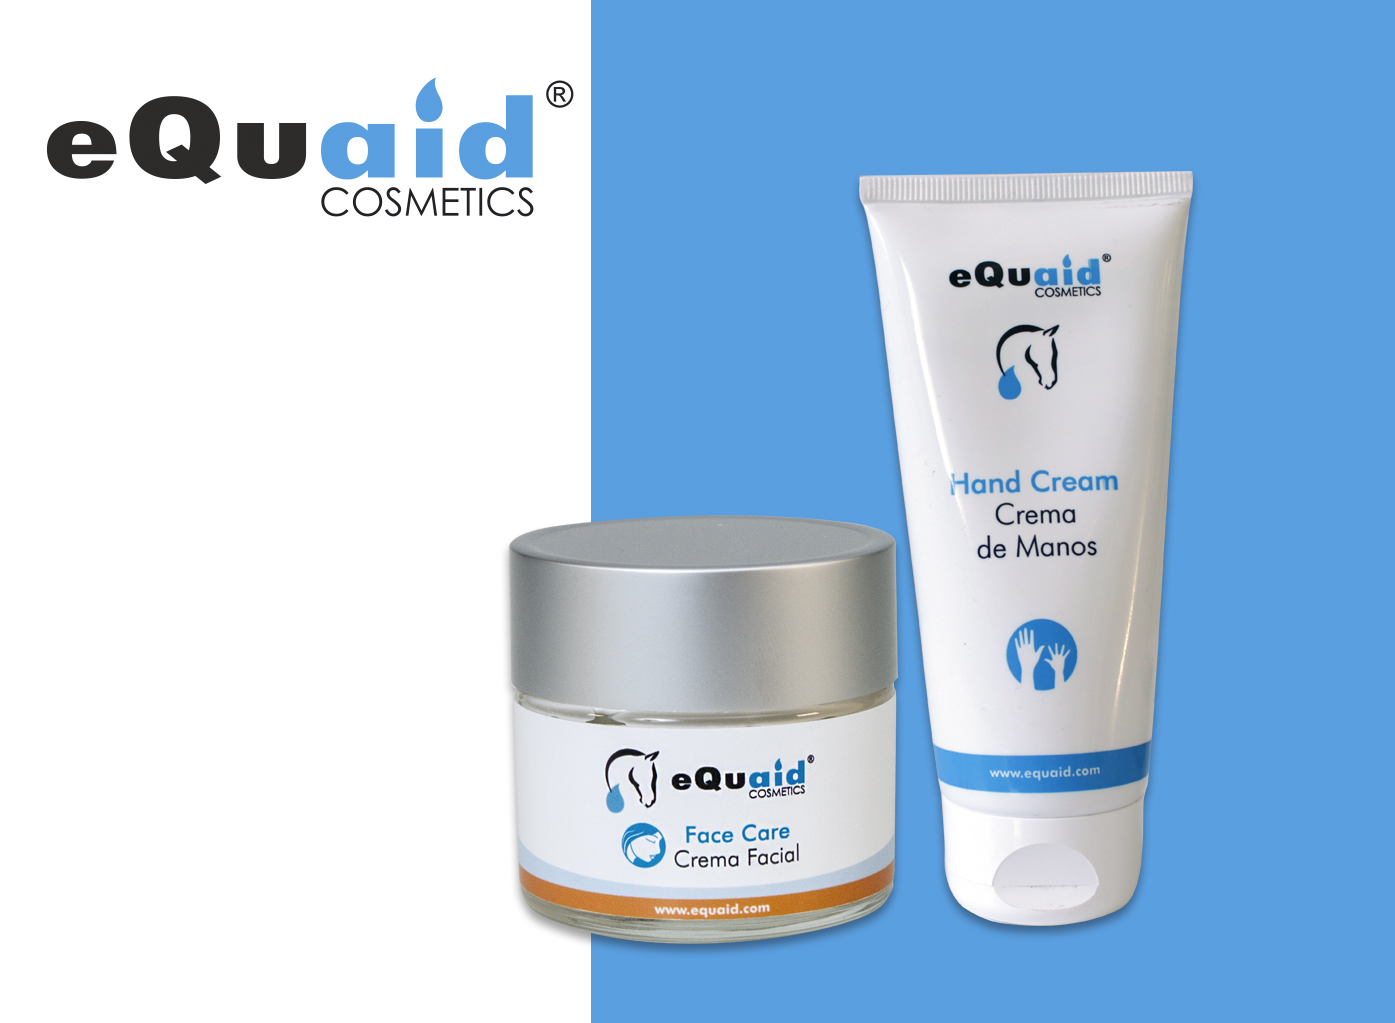 Equaid cosmetics